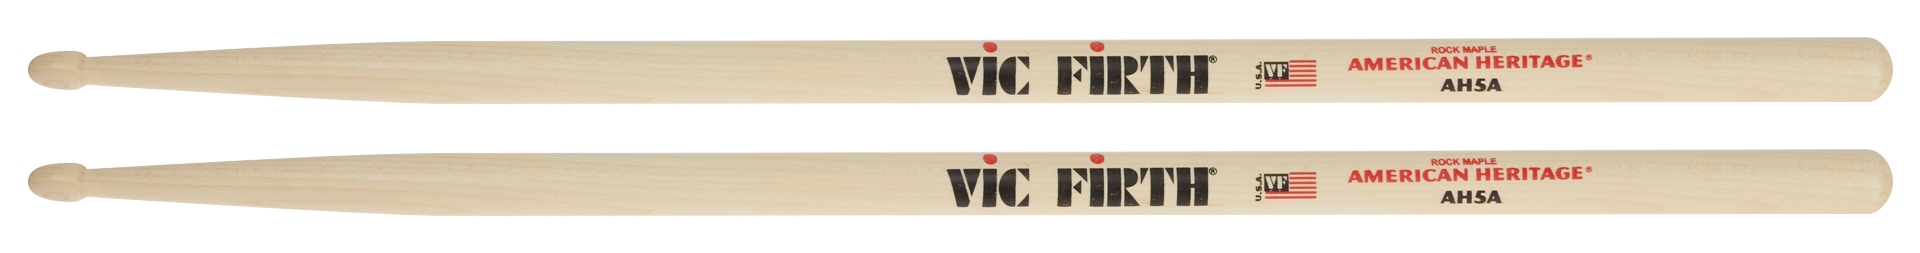 VIC FIRTH AH5A American Heritage®